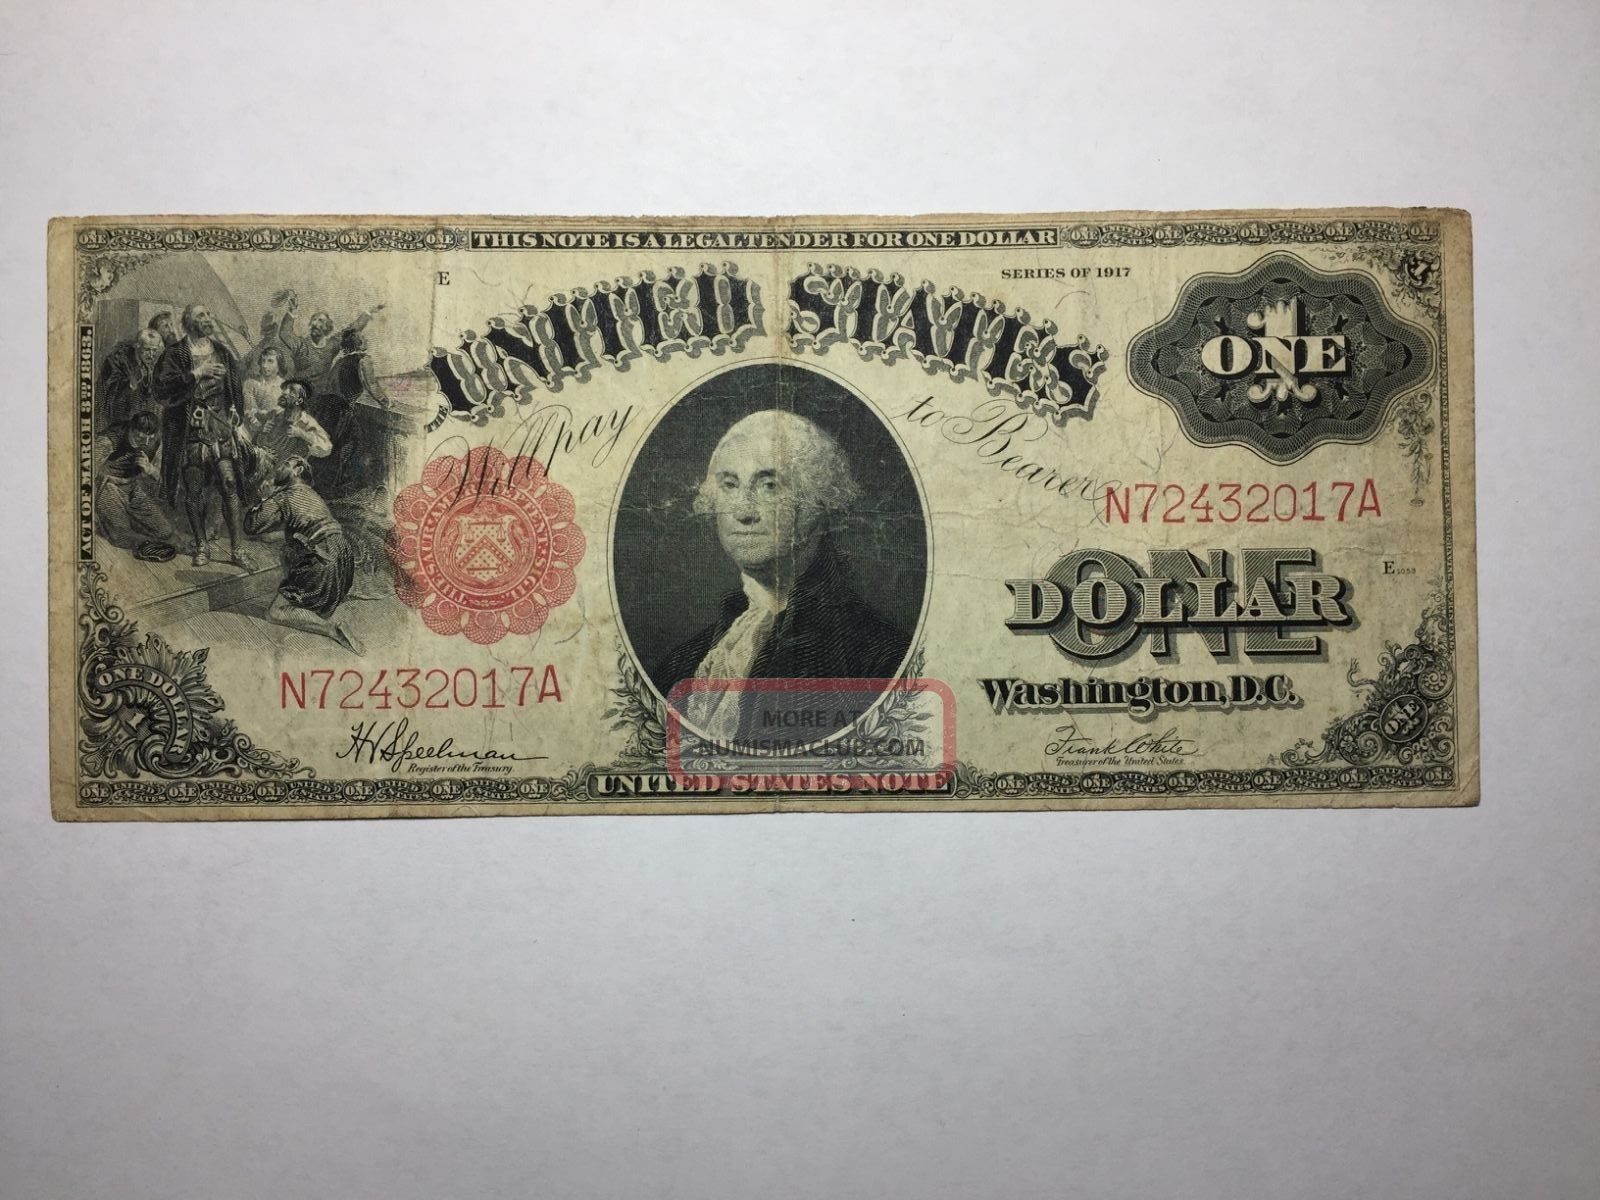 Series 1917 Large Size $1 Legal Tender Us Note Sawhorse Reverse Fine Fr 39 Large Size Notes photo